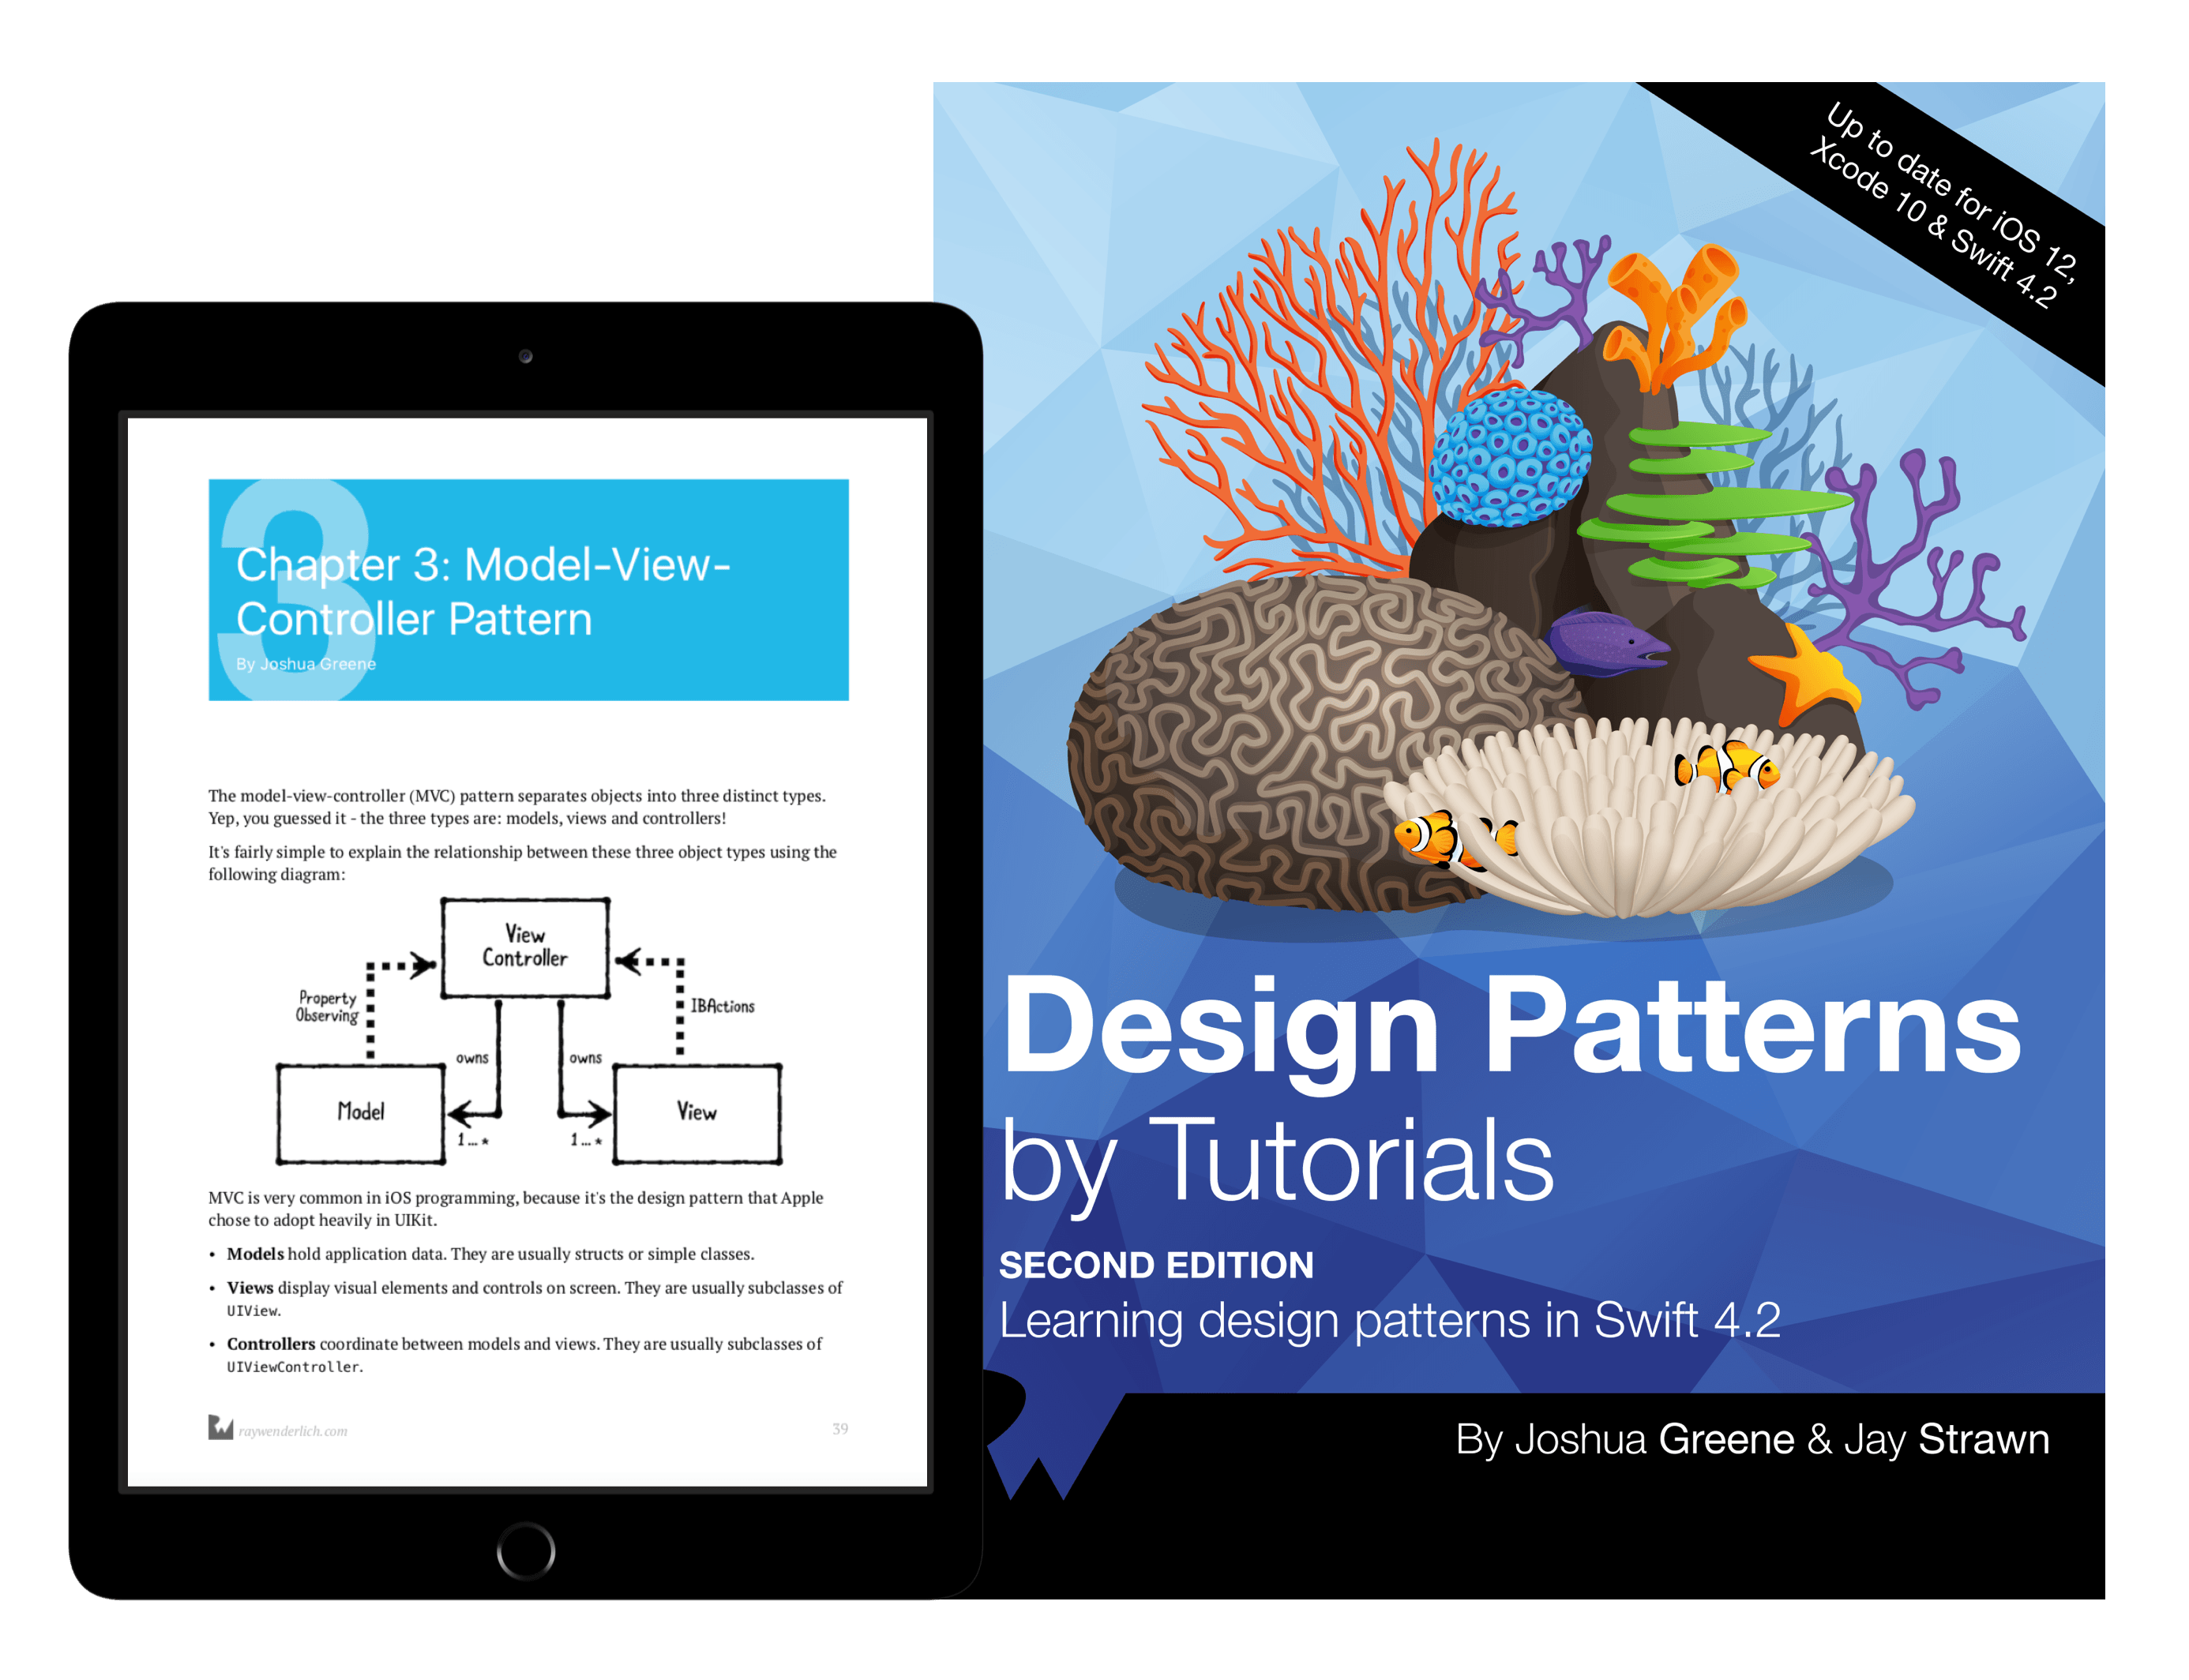 Design Patterns by Tutorials